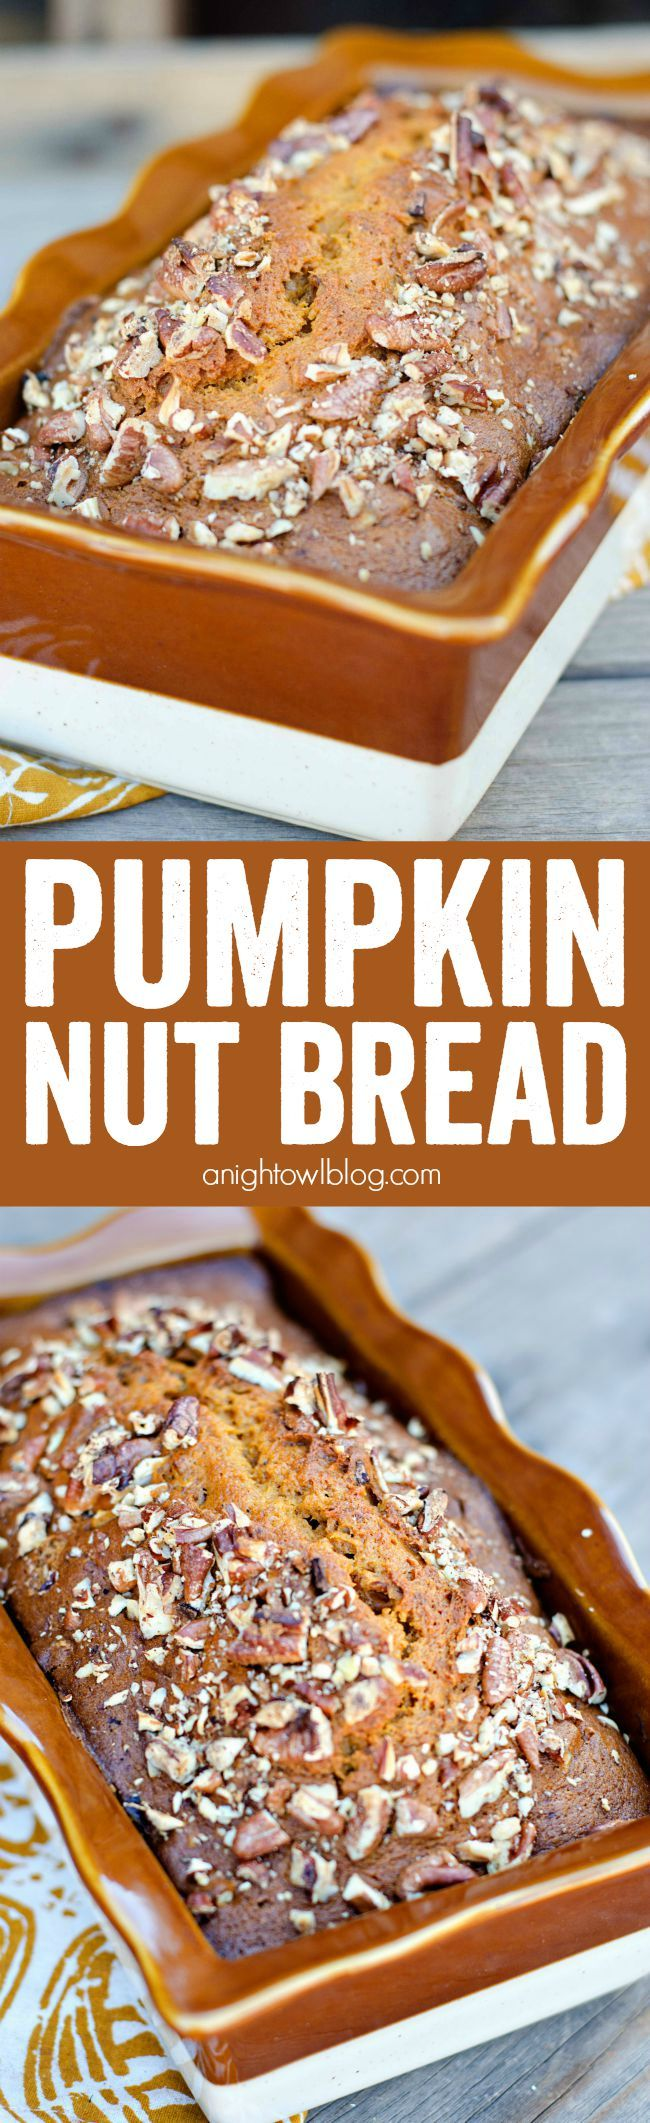 Easy Pumpkin Nut Bread recipe baked in a gorgeous #WorldMarket Ruffled Loaf Pan! #WorldMarketTribe